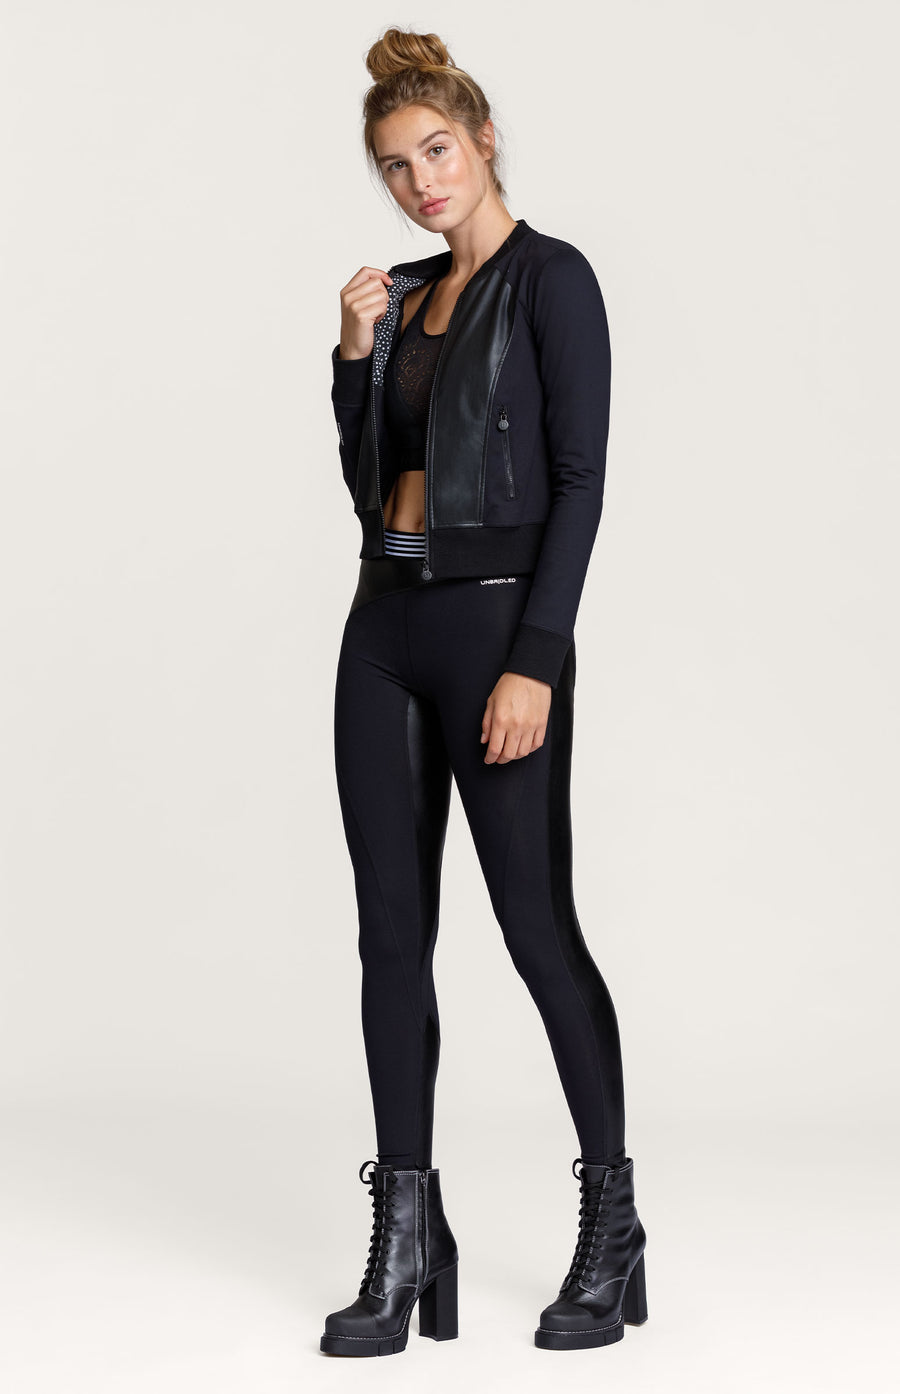 Joyner Faux Leather Legging - Onyx